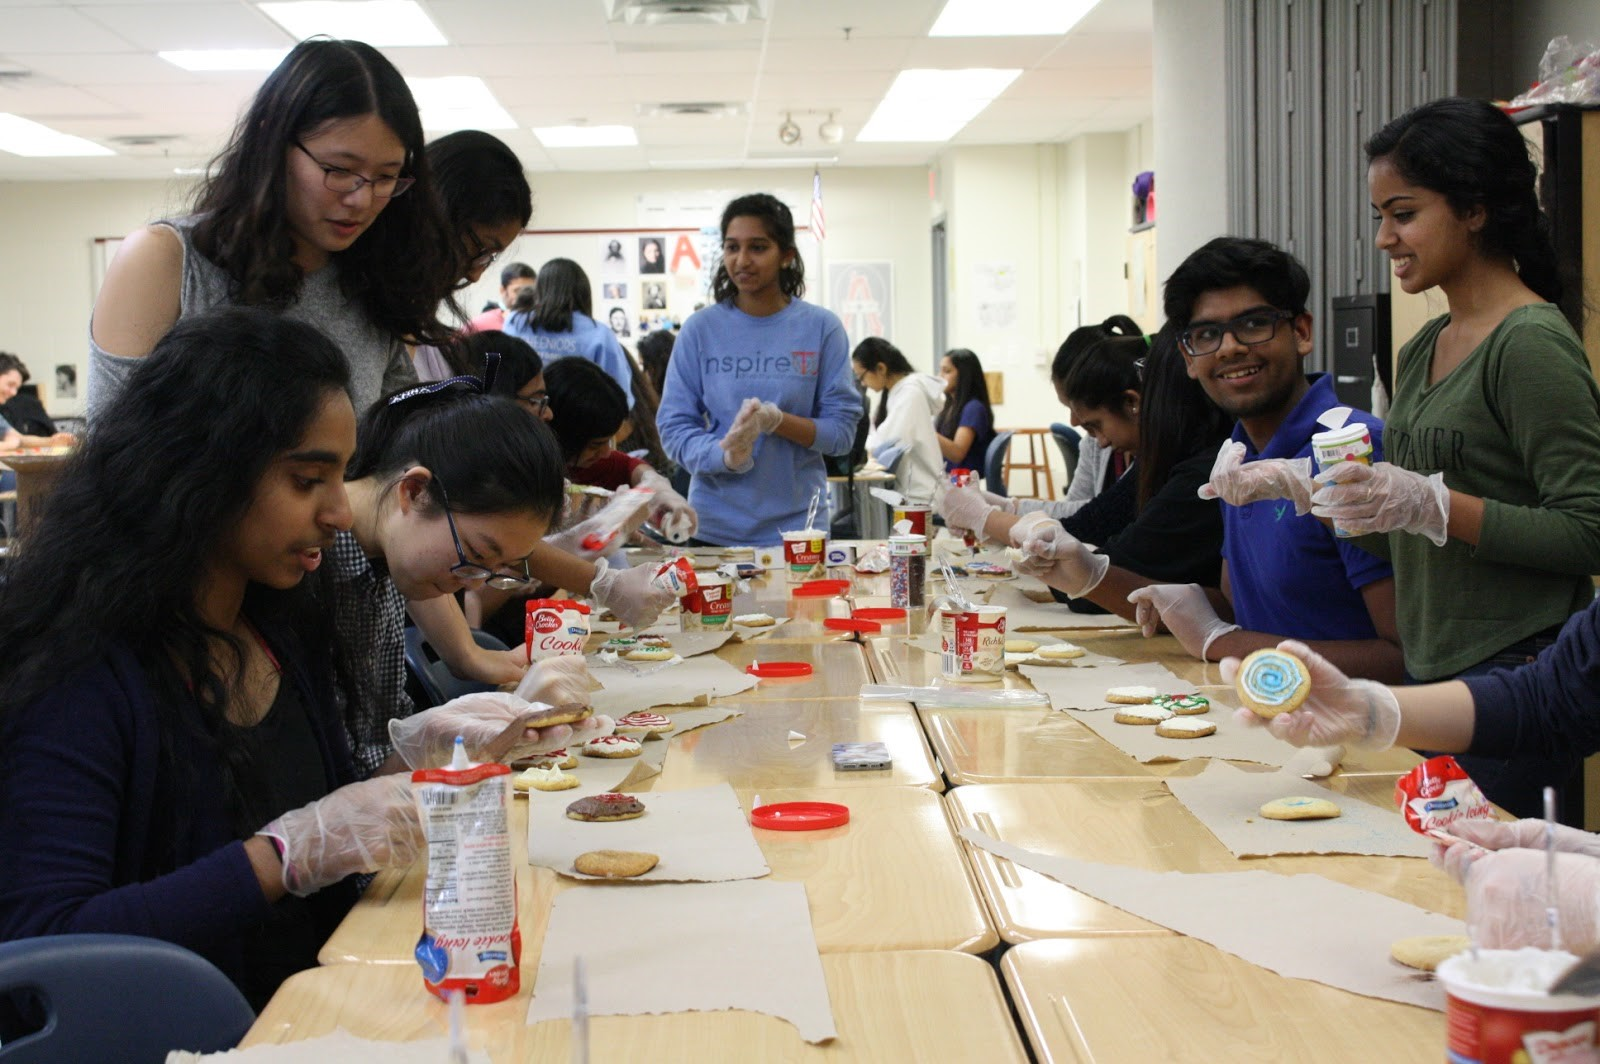 Members of the National Honor Society decorate cookies to send to the Annandale Volunteer Fire Department. The event took place on March 29 during eighth period.